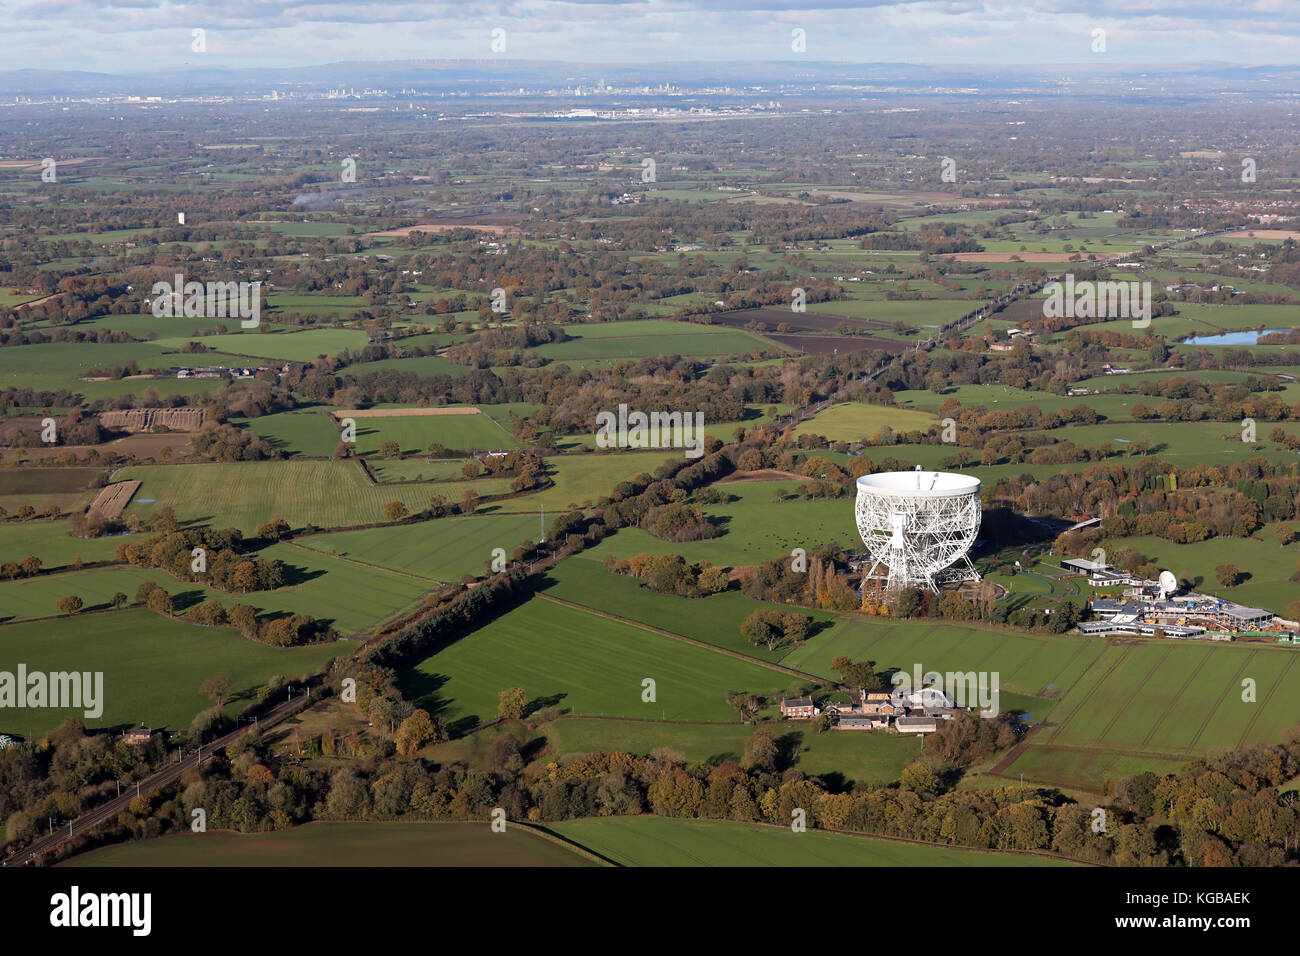 aerial view of Jodrell Bank in Cheshire, UK Stock Photo